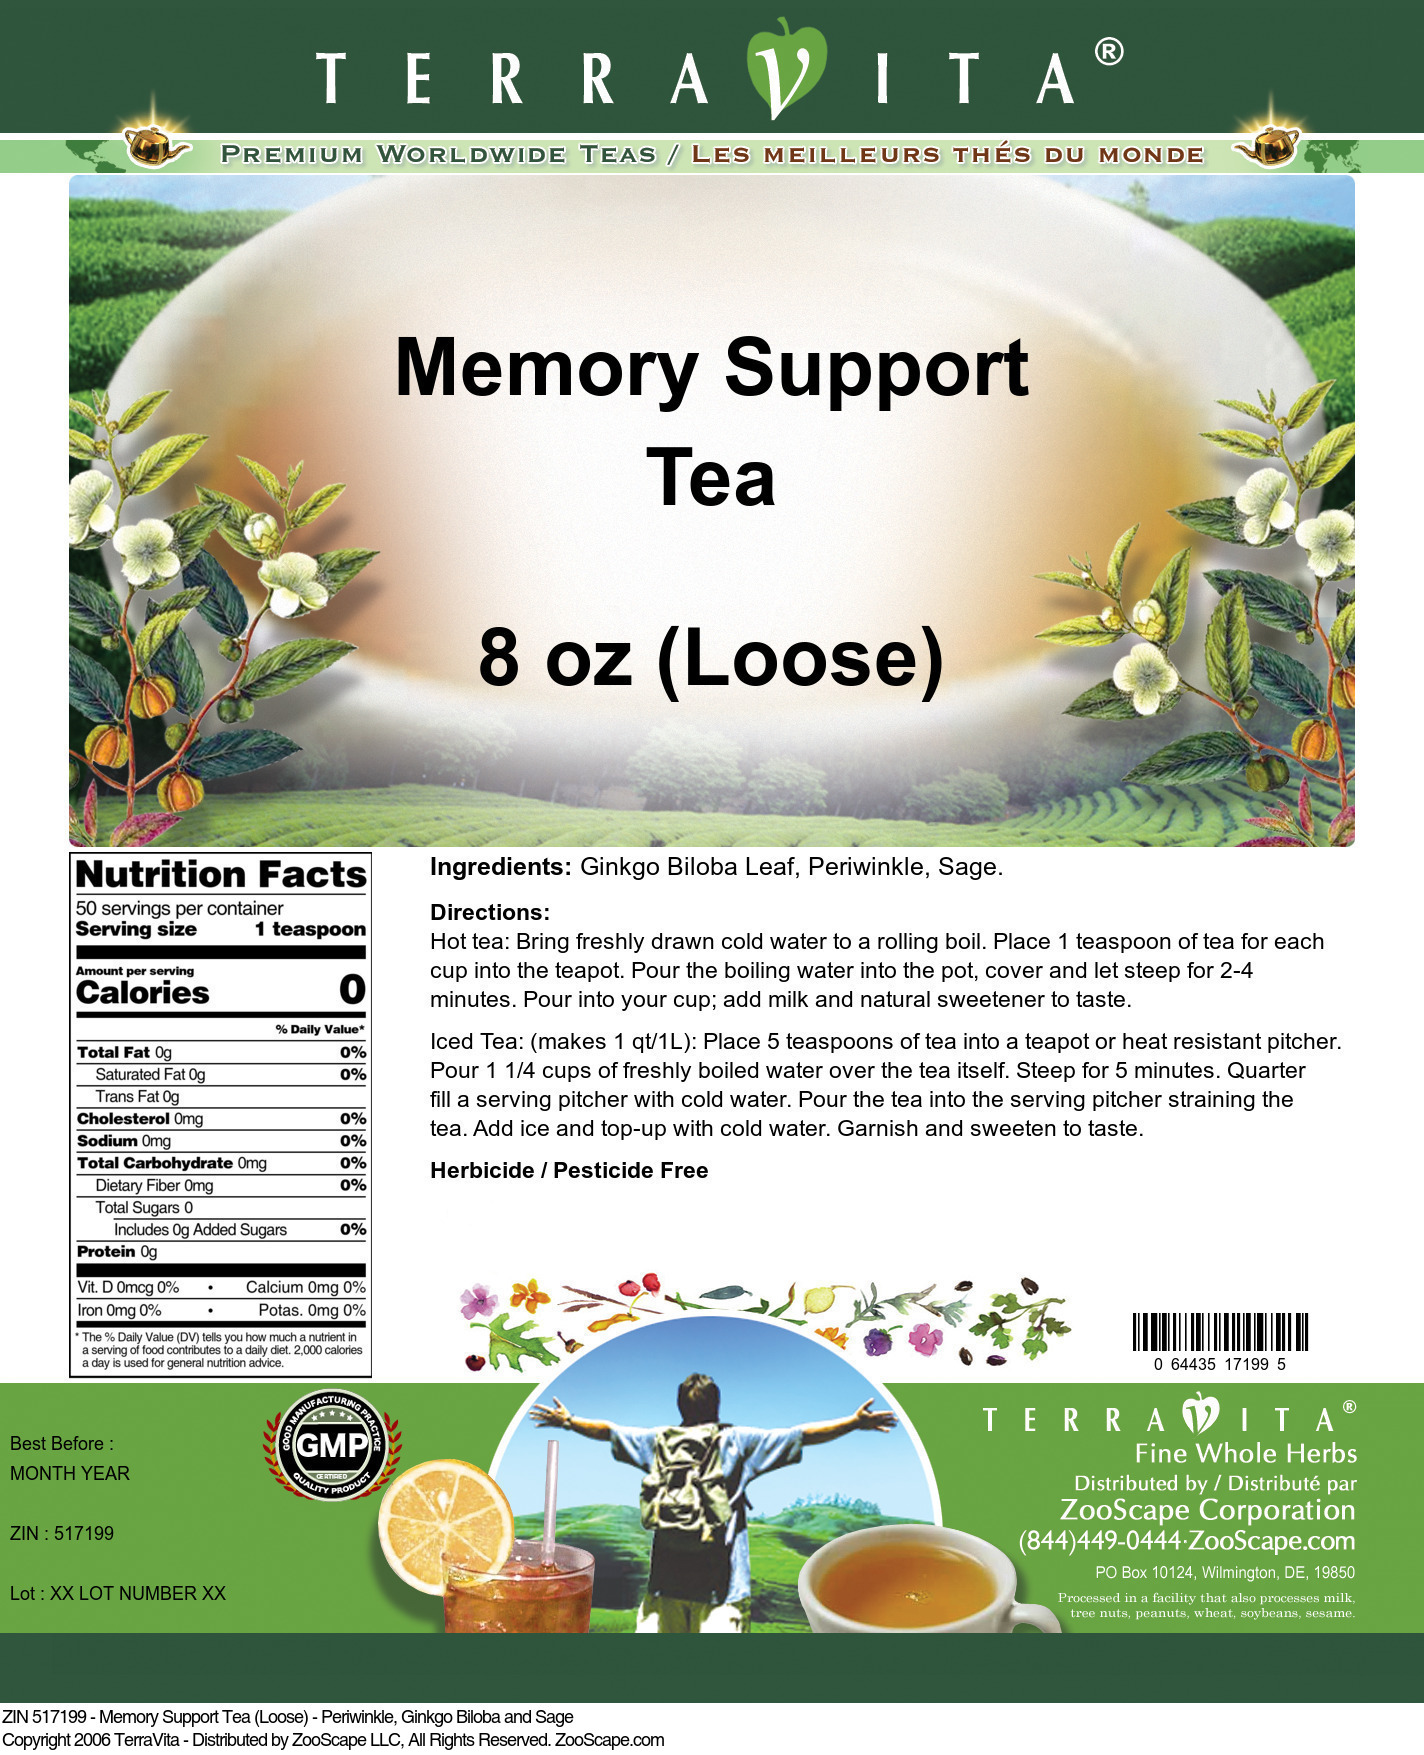 Memory Support Tea (Loose) - Periwinkle, Ginkgo Biloba and Sage